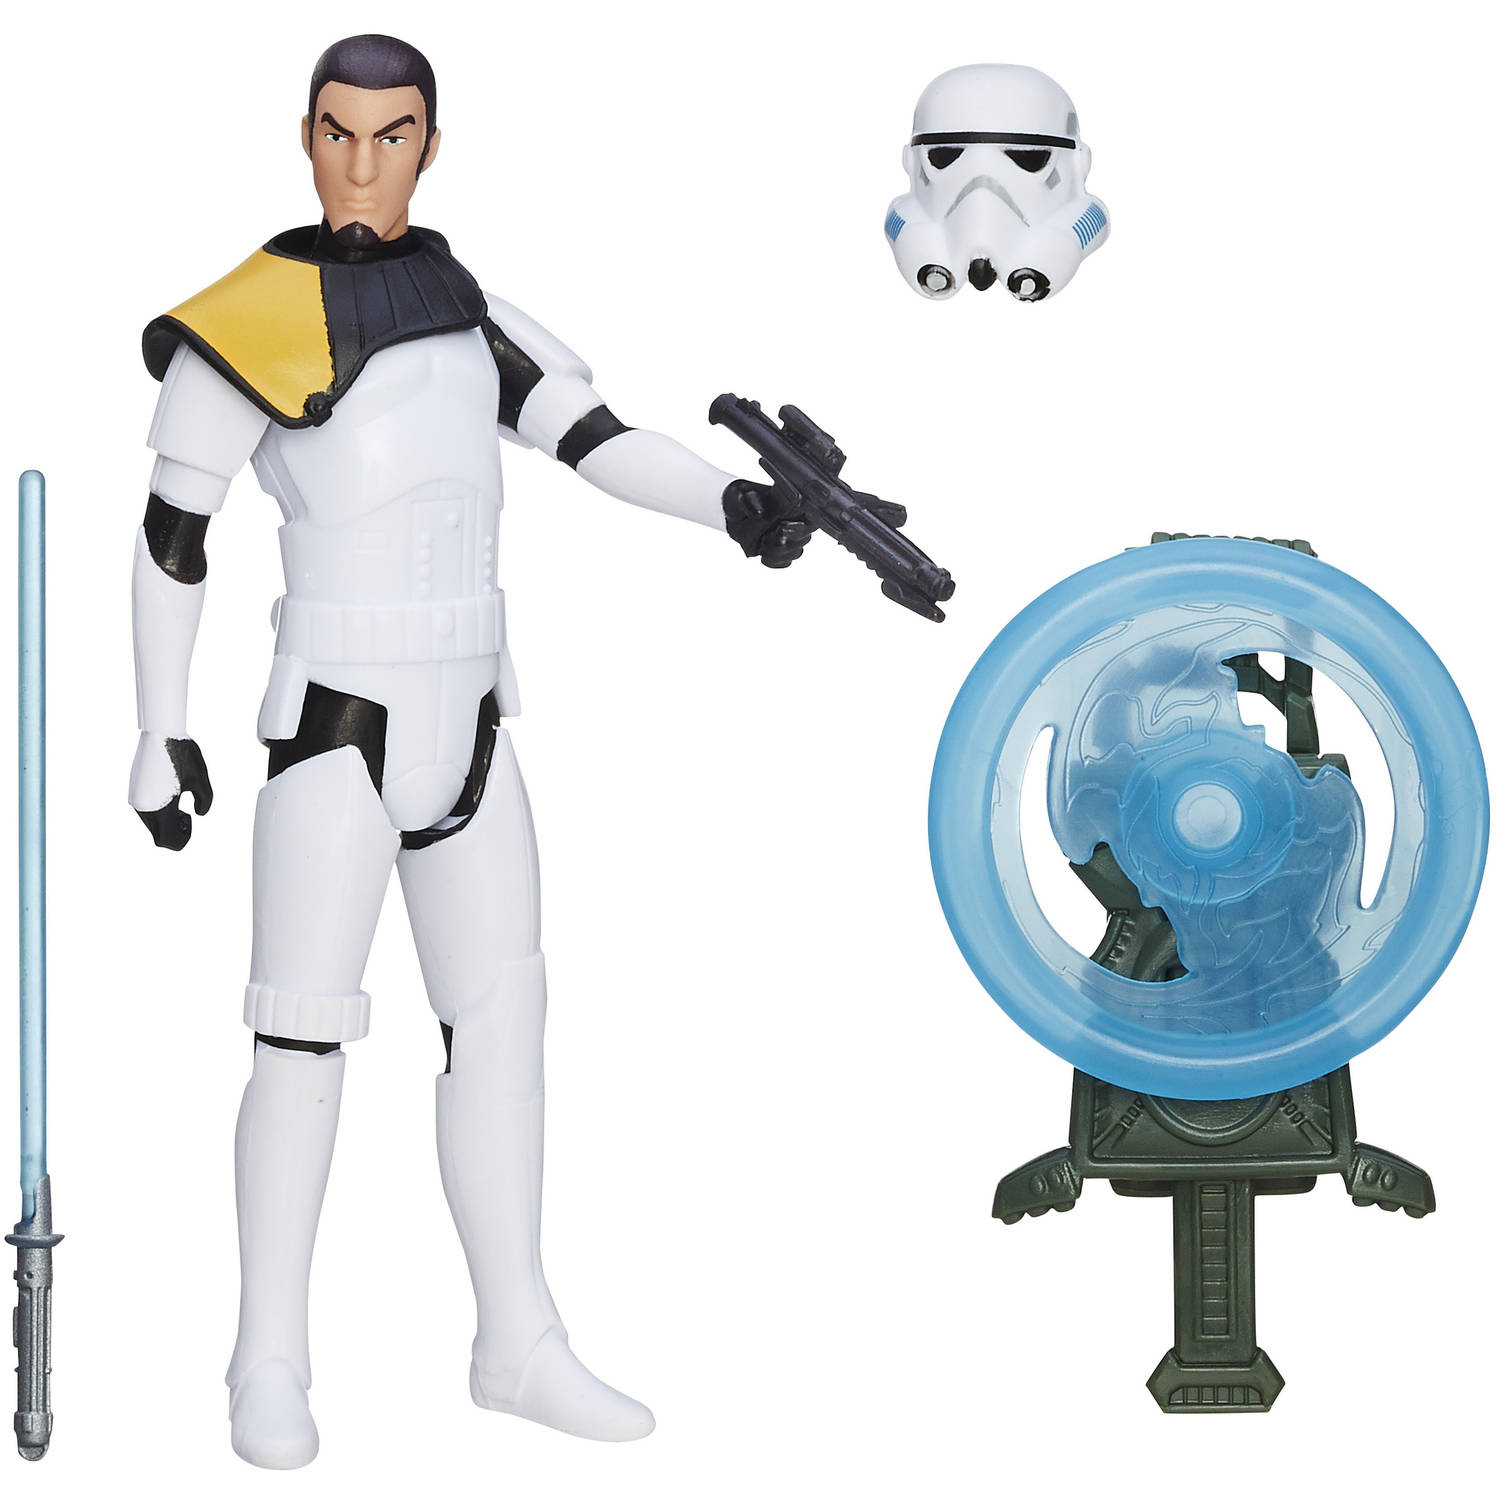 Star Wars Rebels Kanan Jarrus (Stormtrooper Disguise) Figure